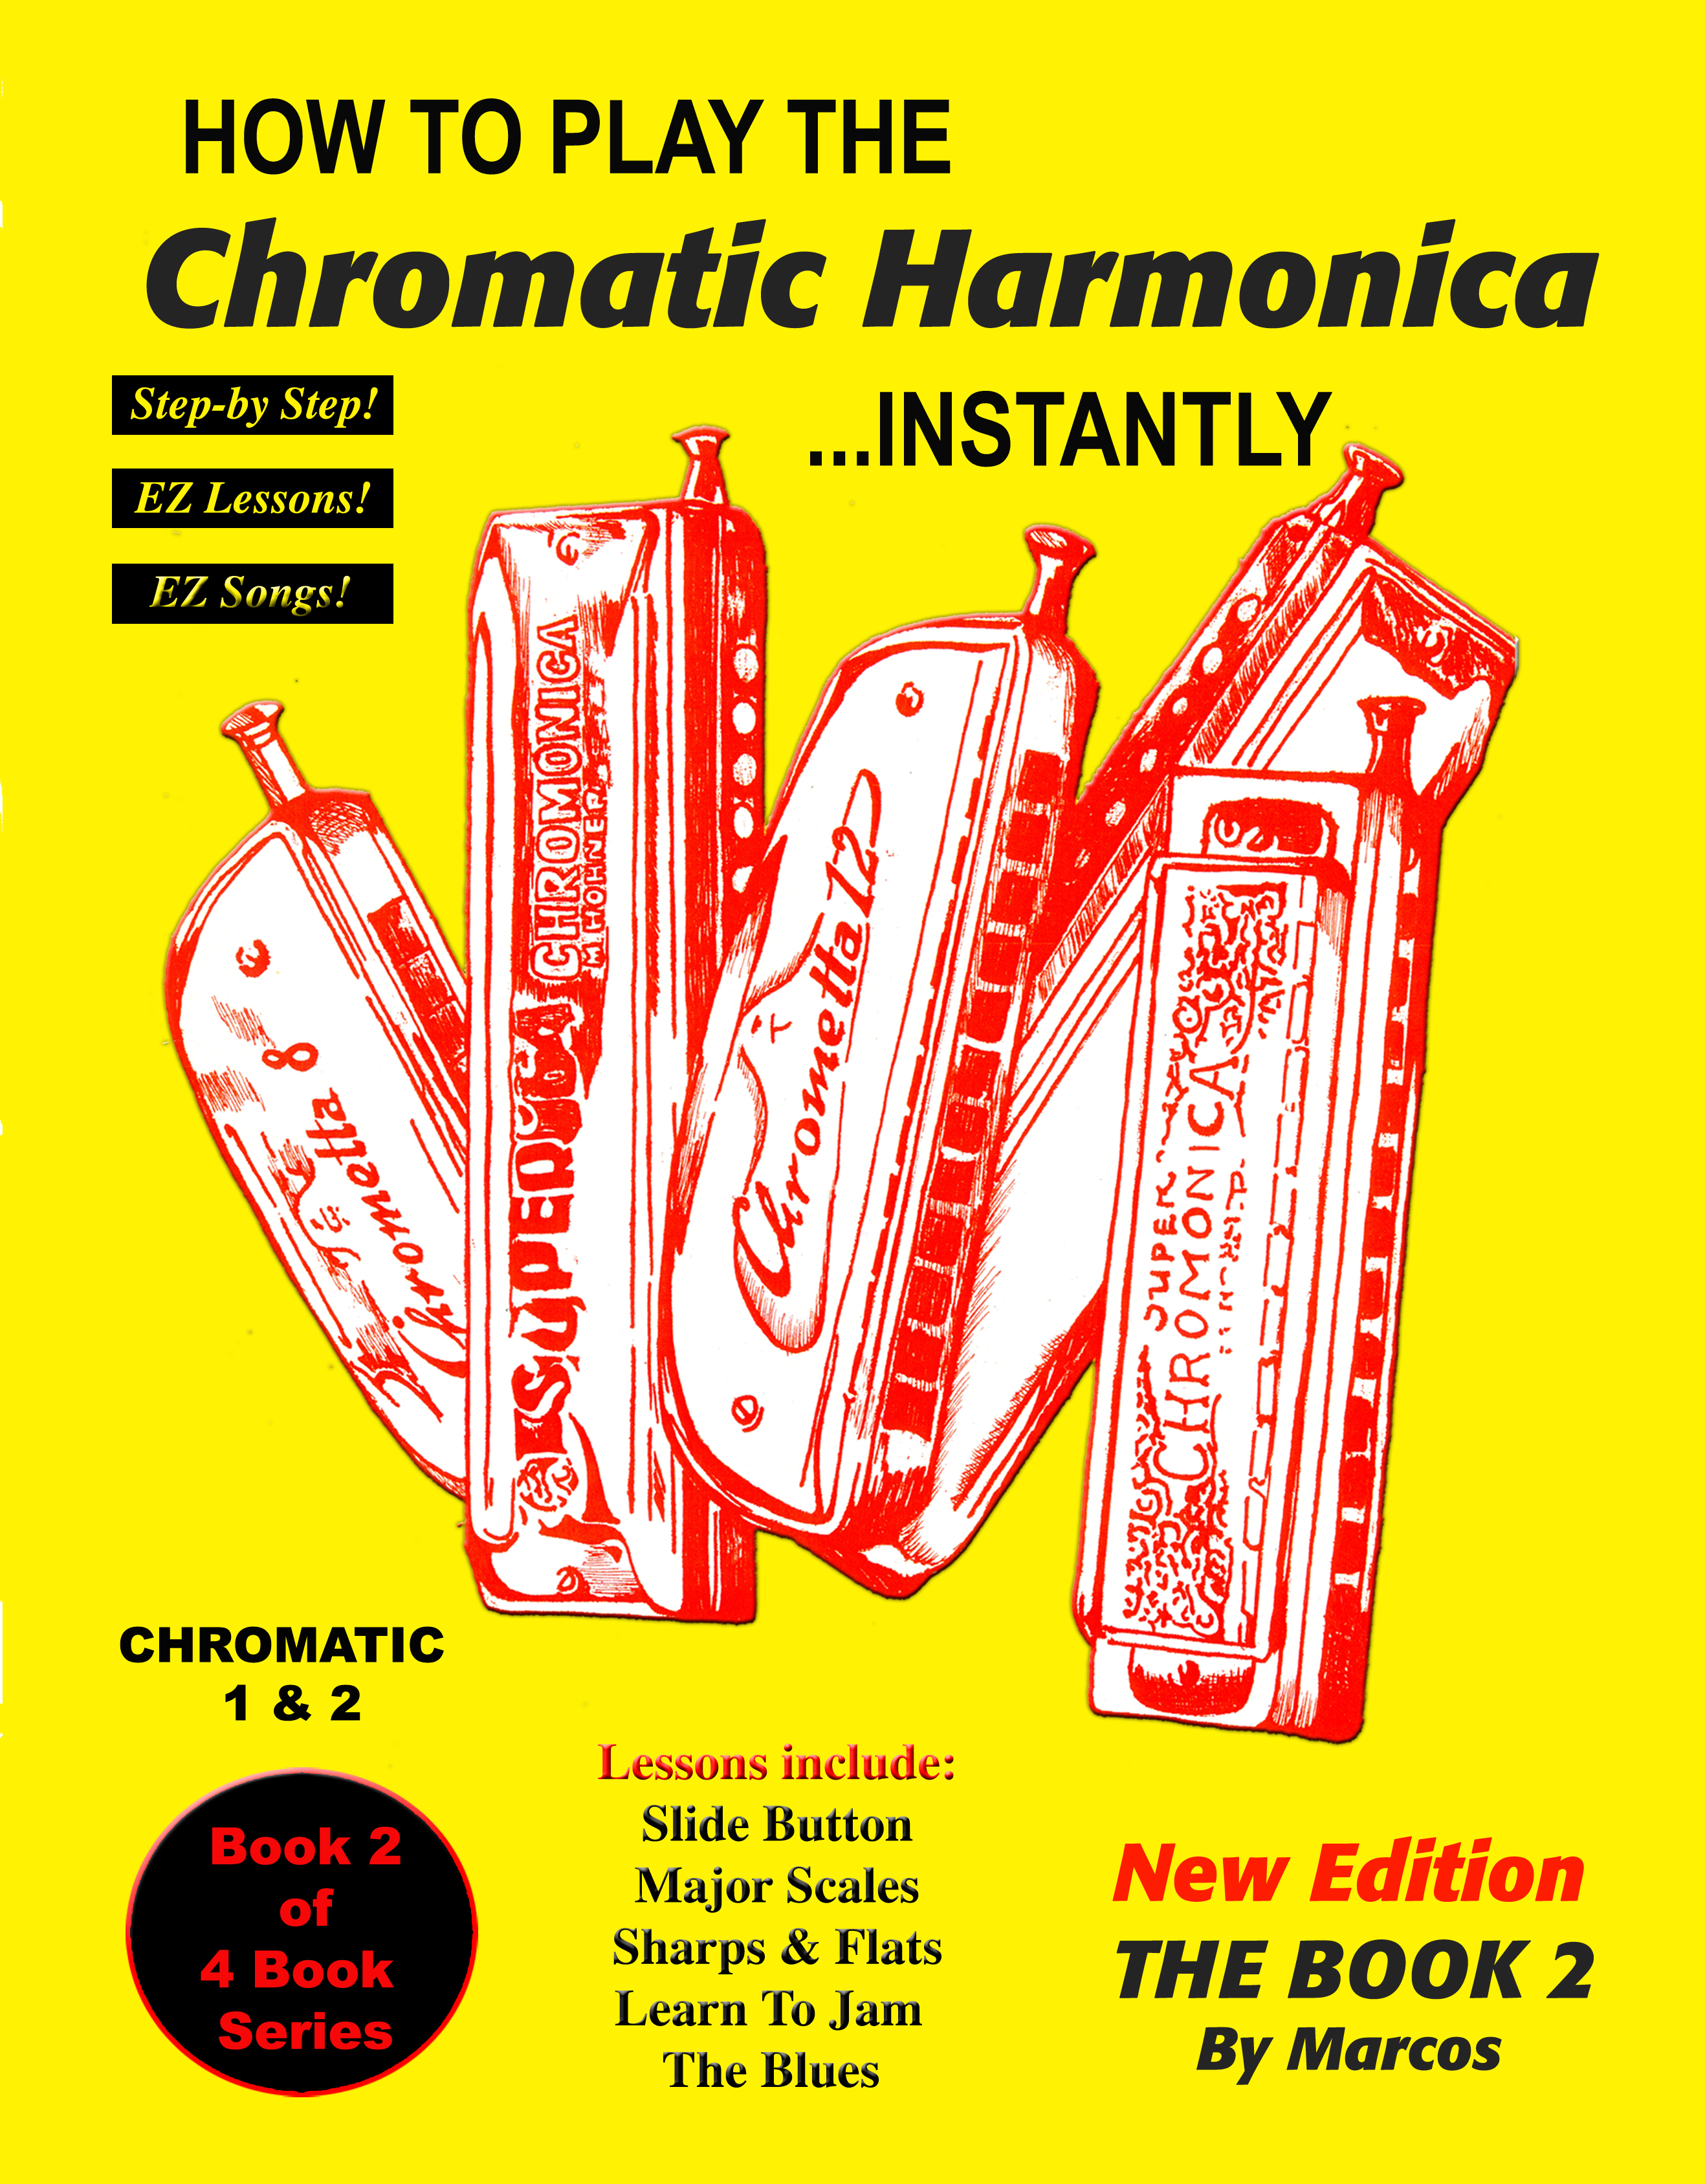 How to Play Chromatic Harmonica Instantly: The Book 2